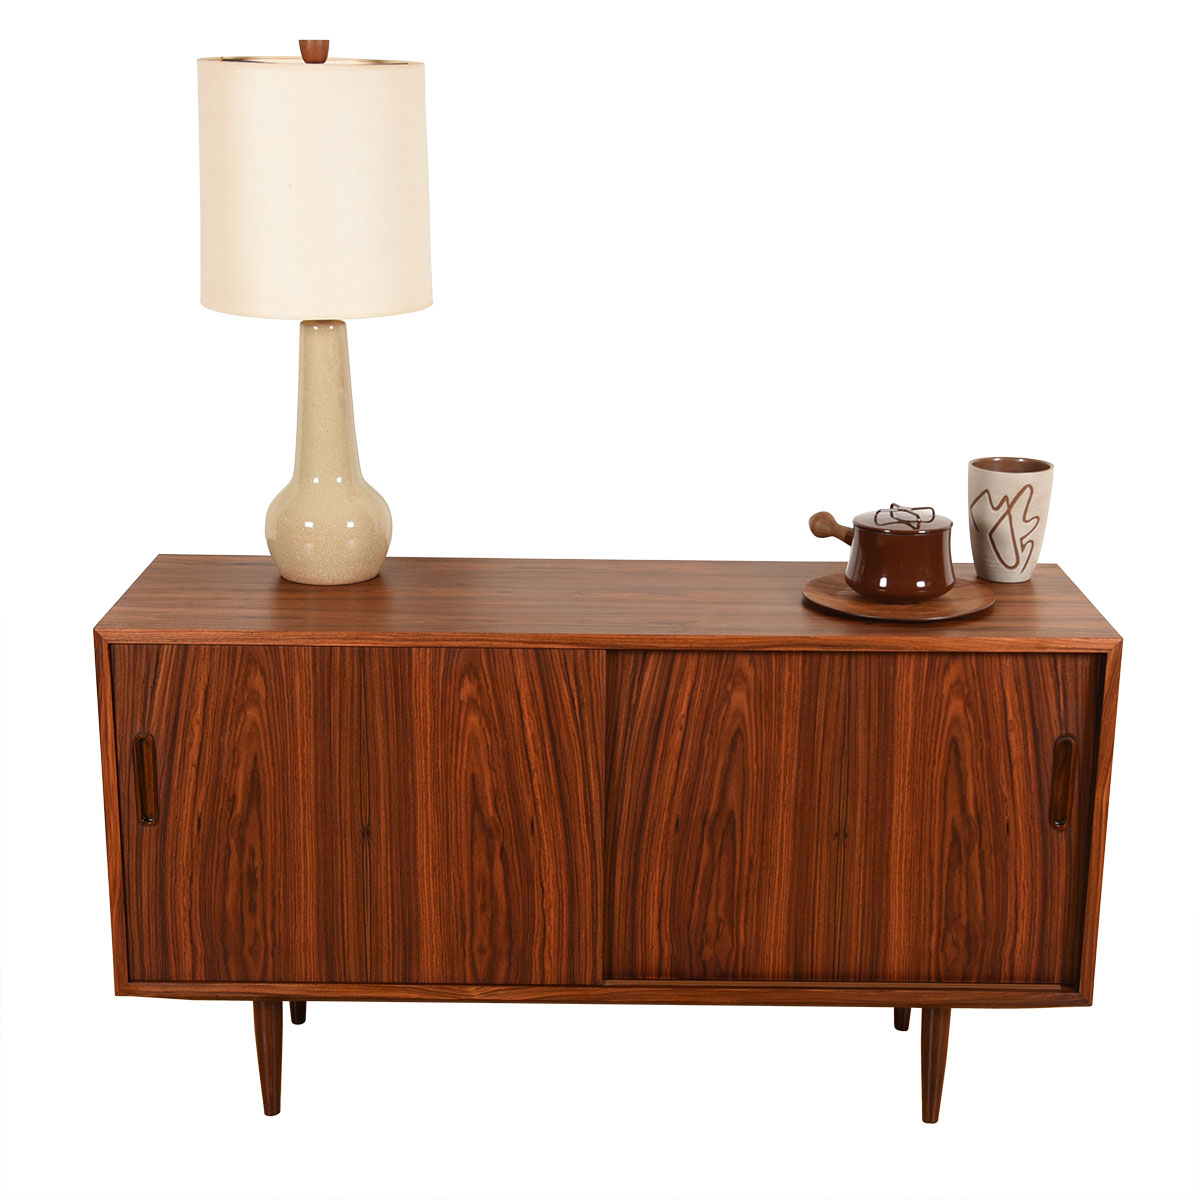 Danish Rosewood Condo-Sized Sliding Door Sideboard / Media Credenza